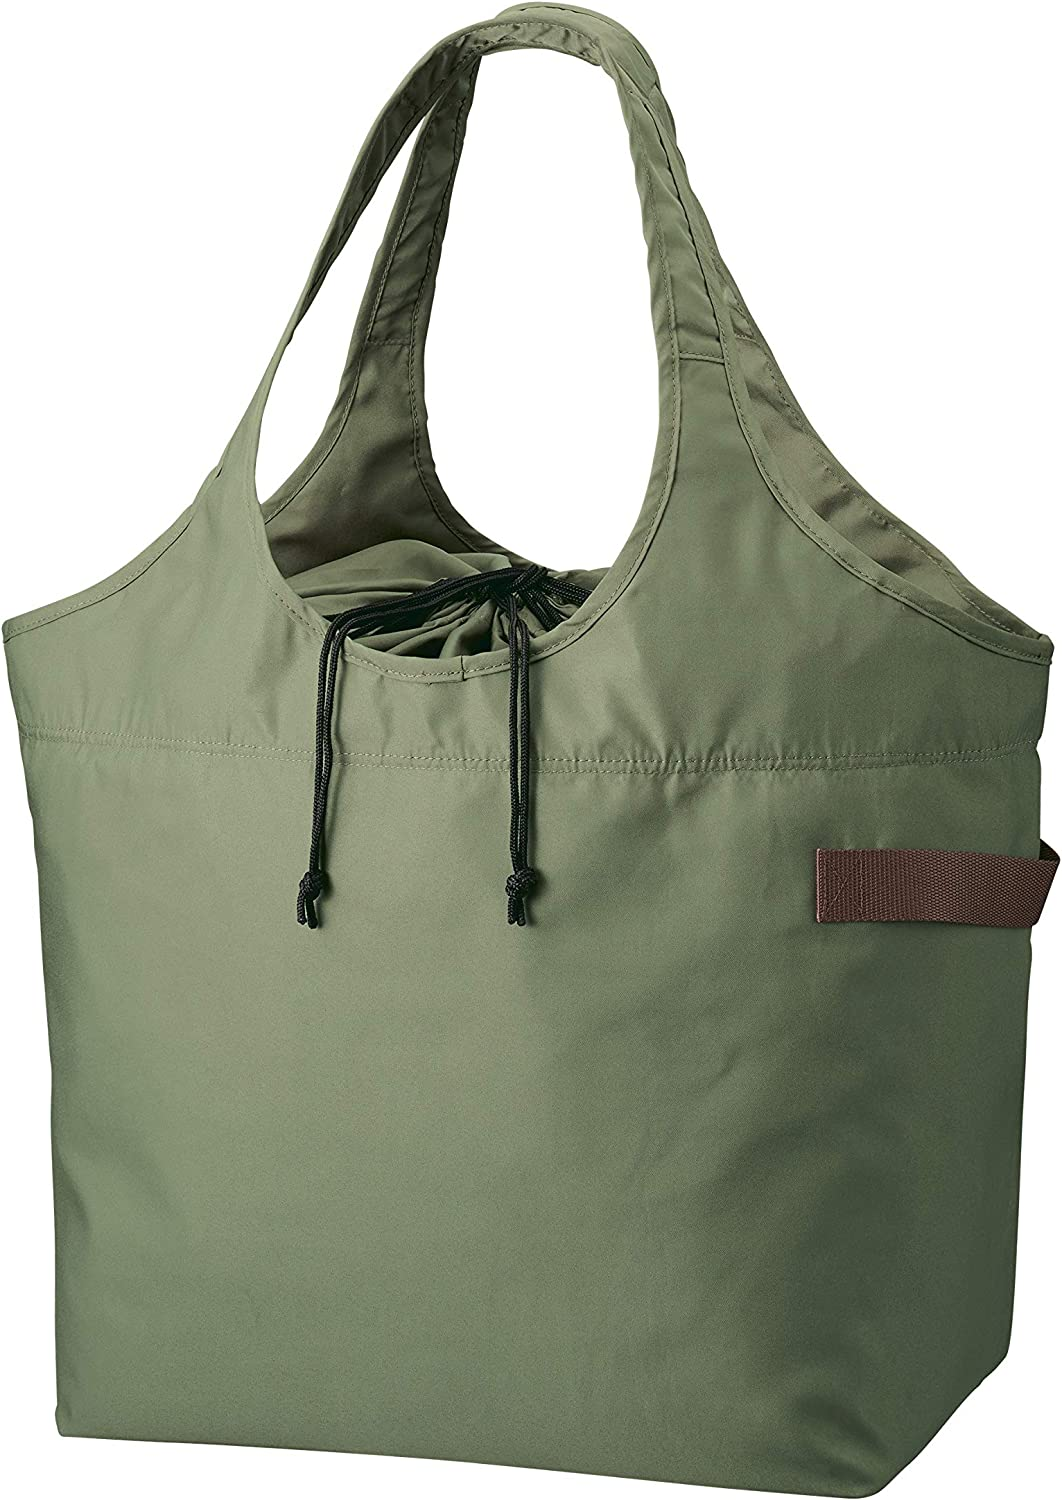 MOTTERU Foldable & Reusable, Cooler Bag, Large size. Beach/Lunch/Picnic/Travel/Grocery Shopping. Japanese products